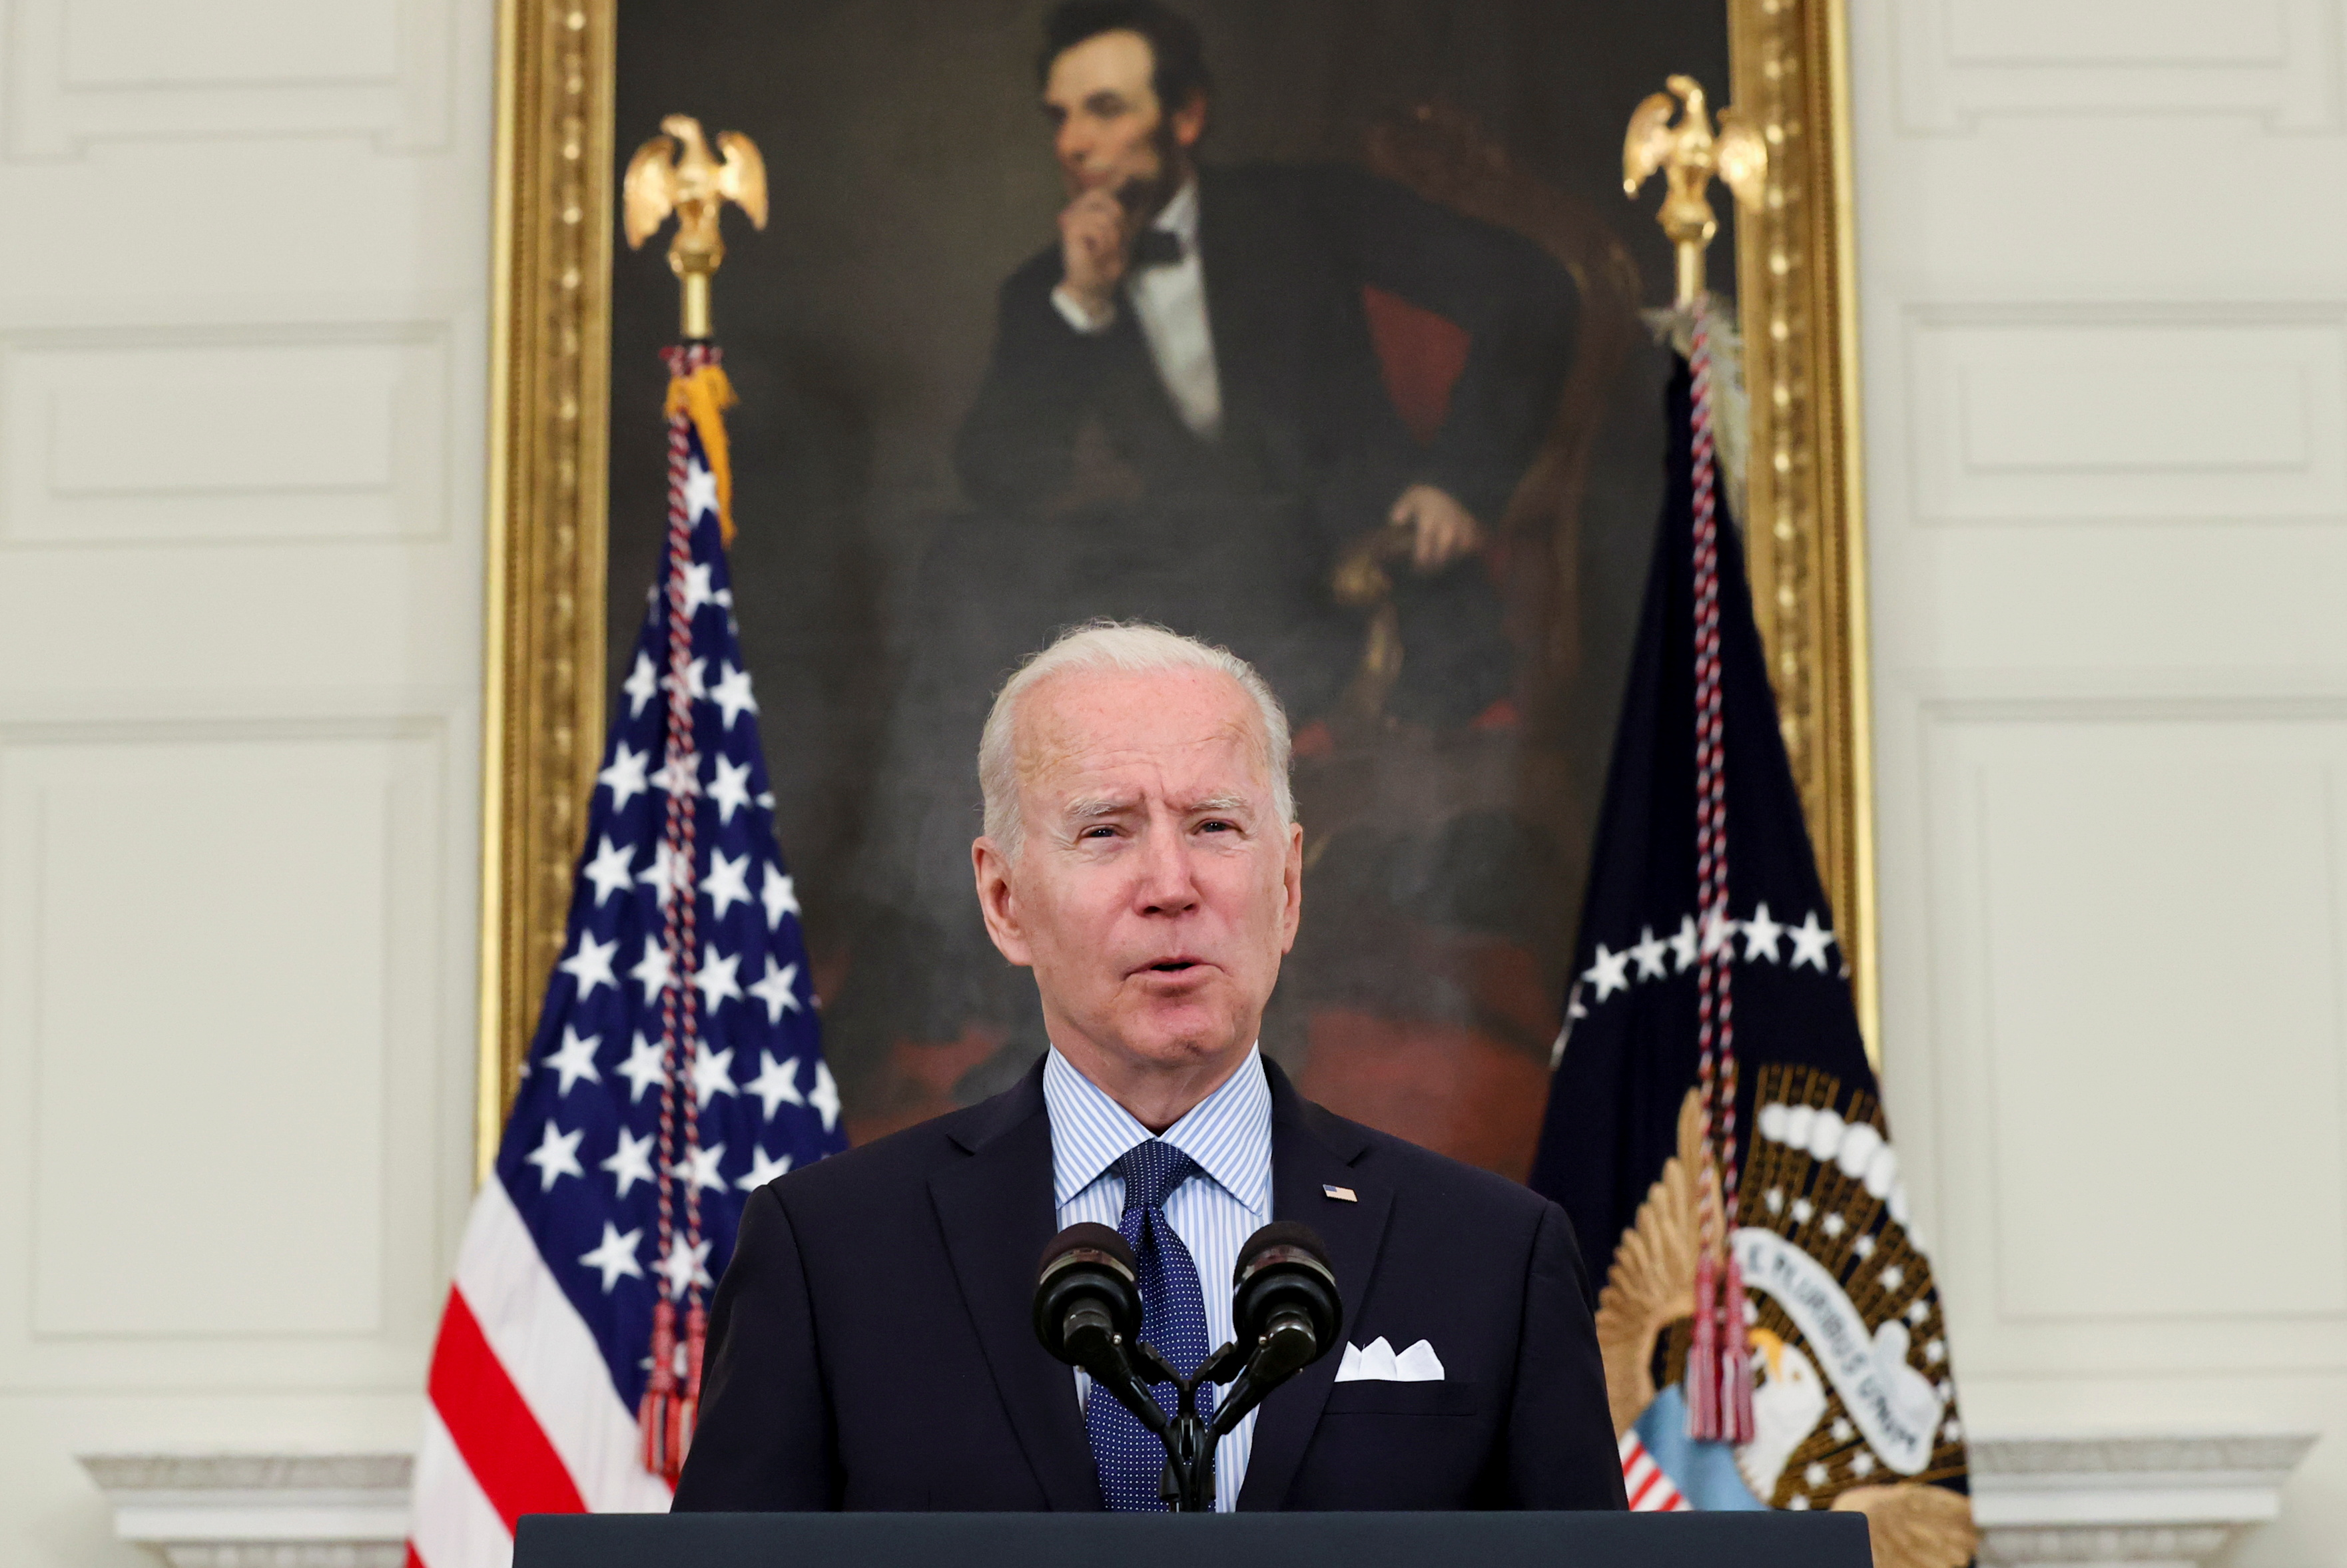 U.S. President Joe Biden delivers remarks on the state of the coronavirus disease (COVID-19) vaccinations from the State Dining Room at the White House in Washington, D.C., U.S., May 4, 2021. REUTERS/Jonathan Ernst